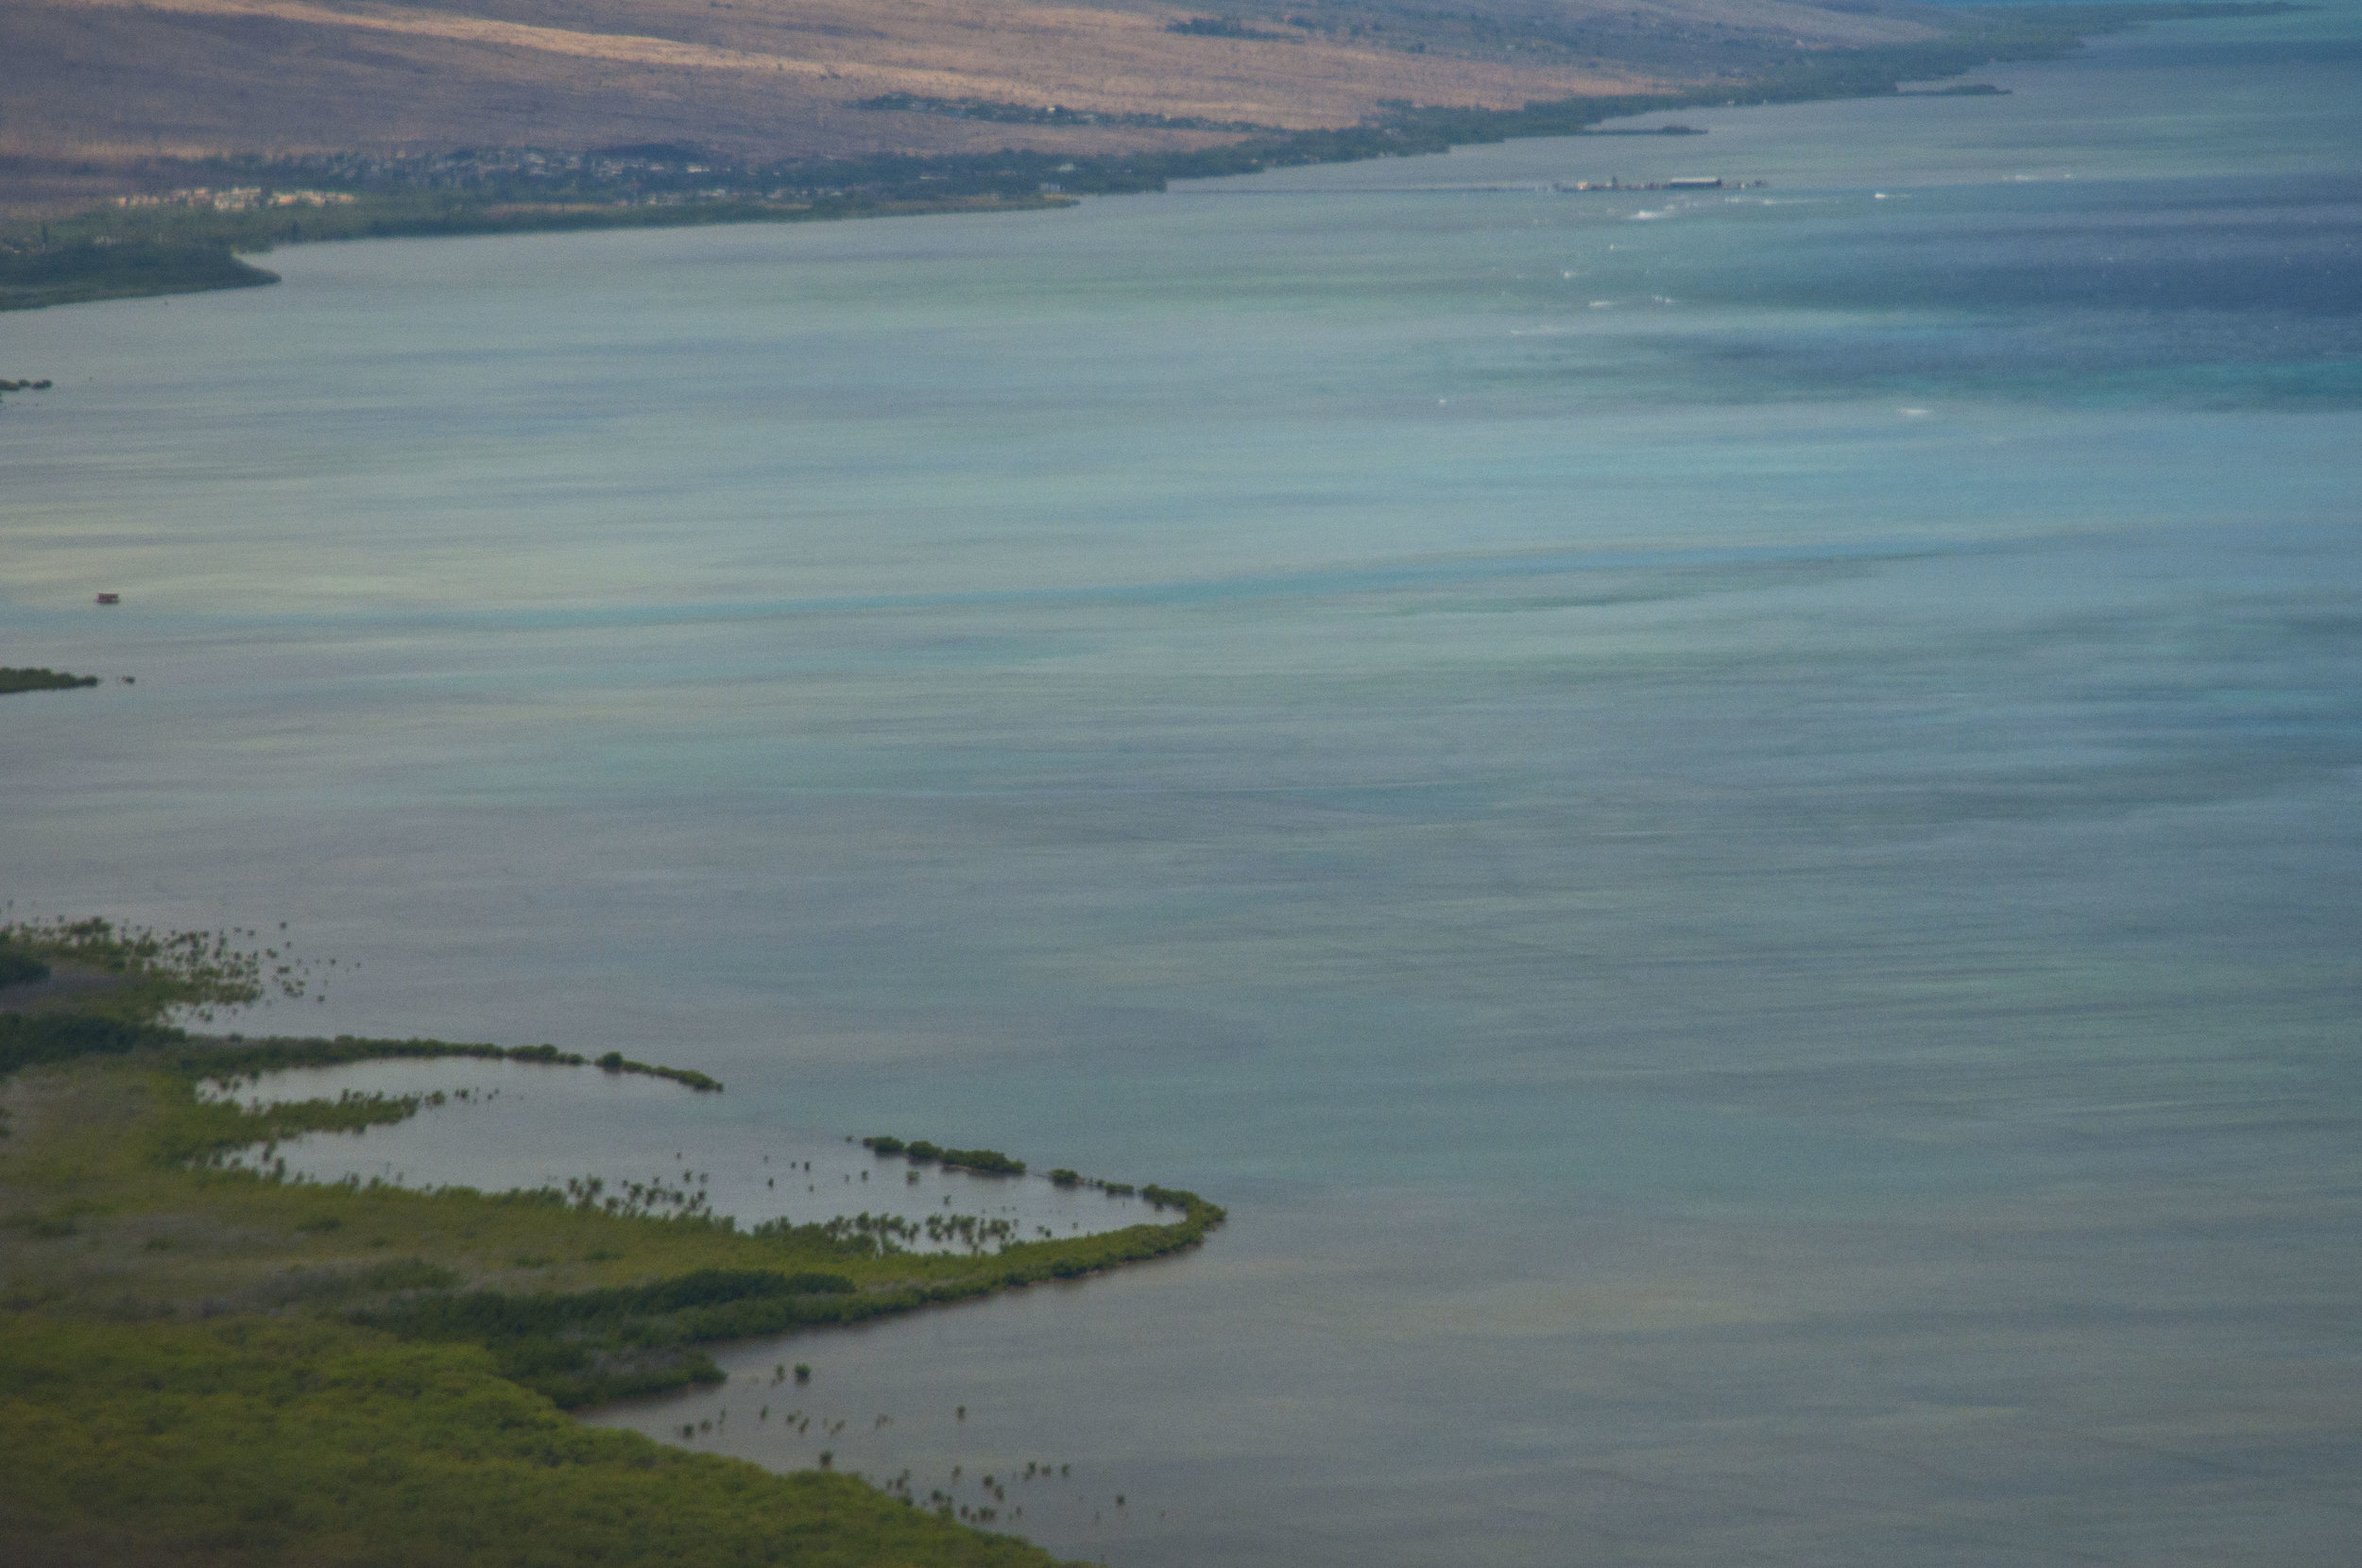 South Shore of Molokai. Waves depict fringing reef. Bonefish flats are inshore of reef.